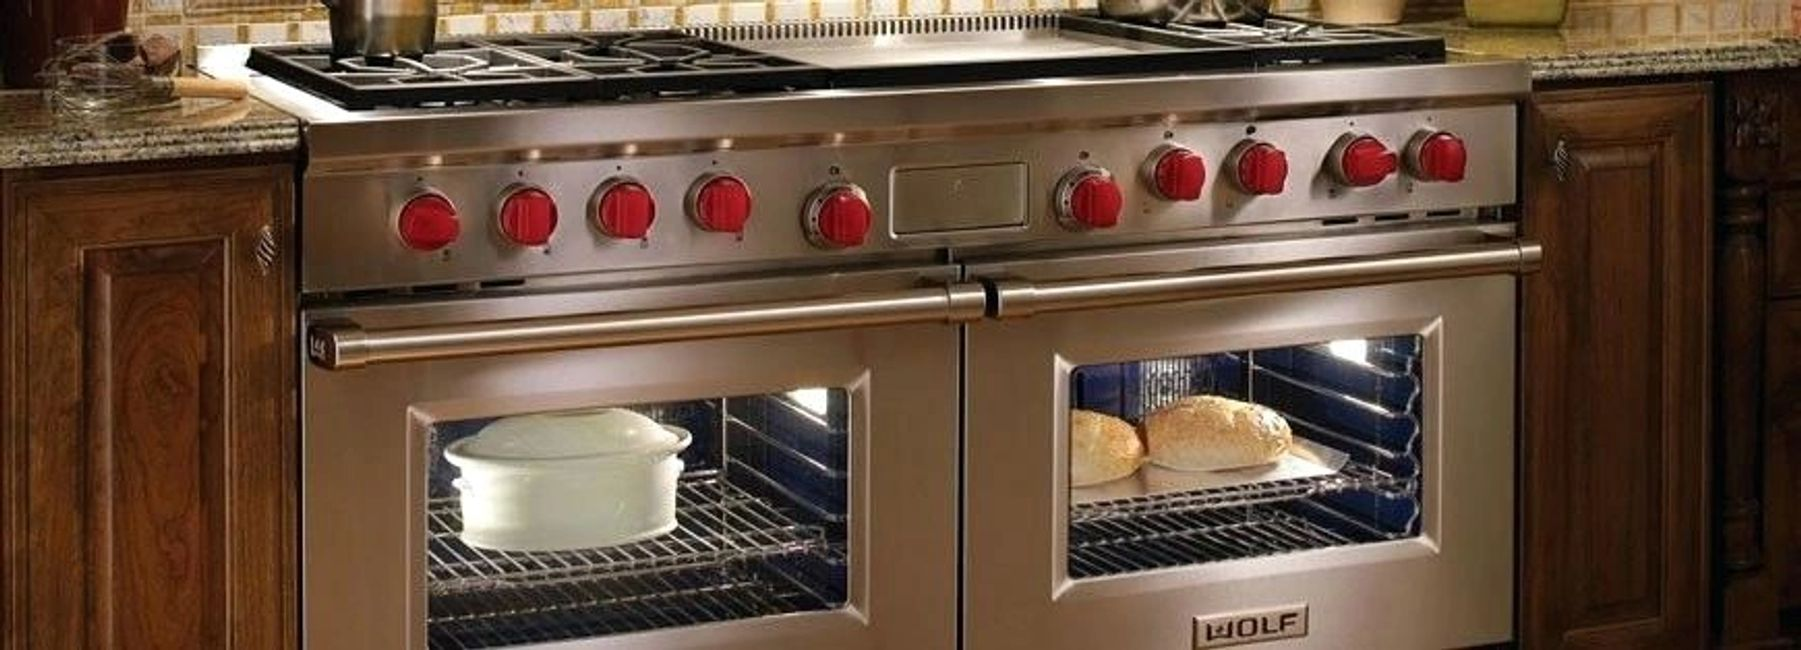 Electric oven Repair Company. Dubai's Best Technicians. 100% Reliable. We repair Oven of all brands